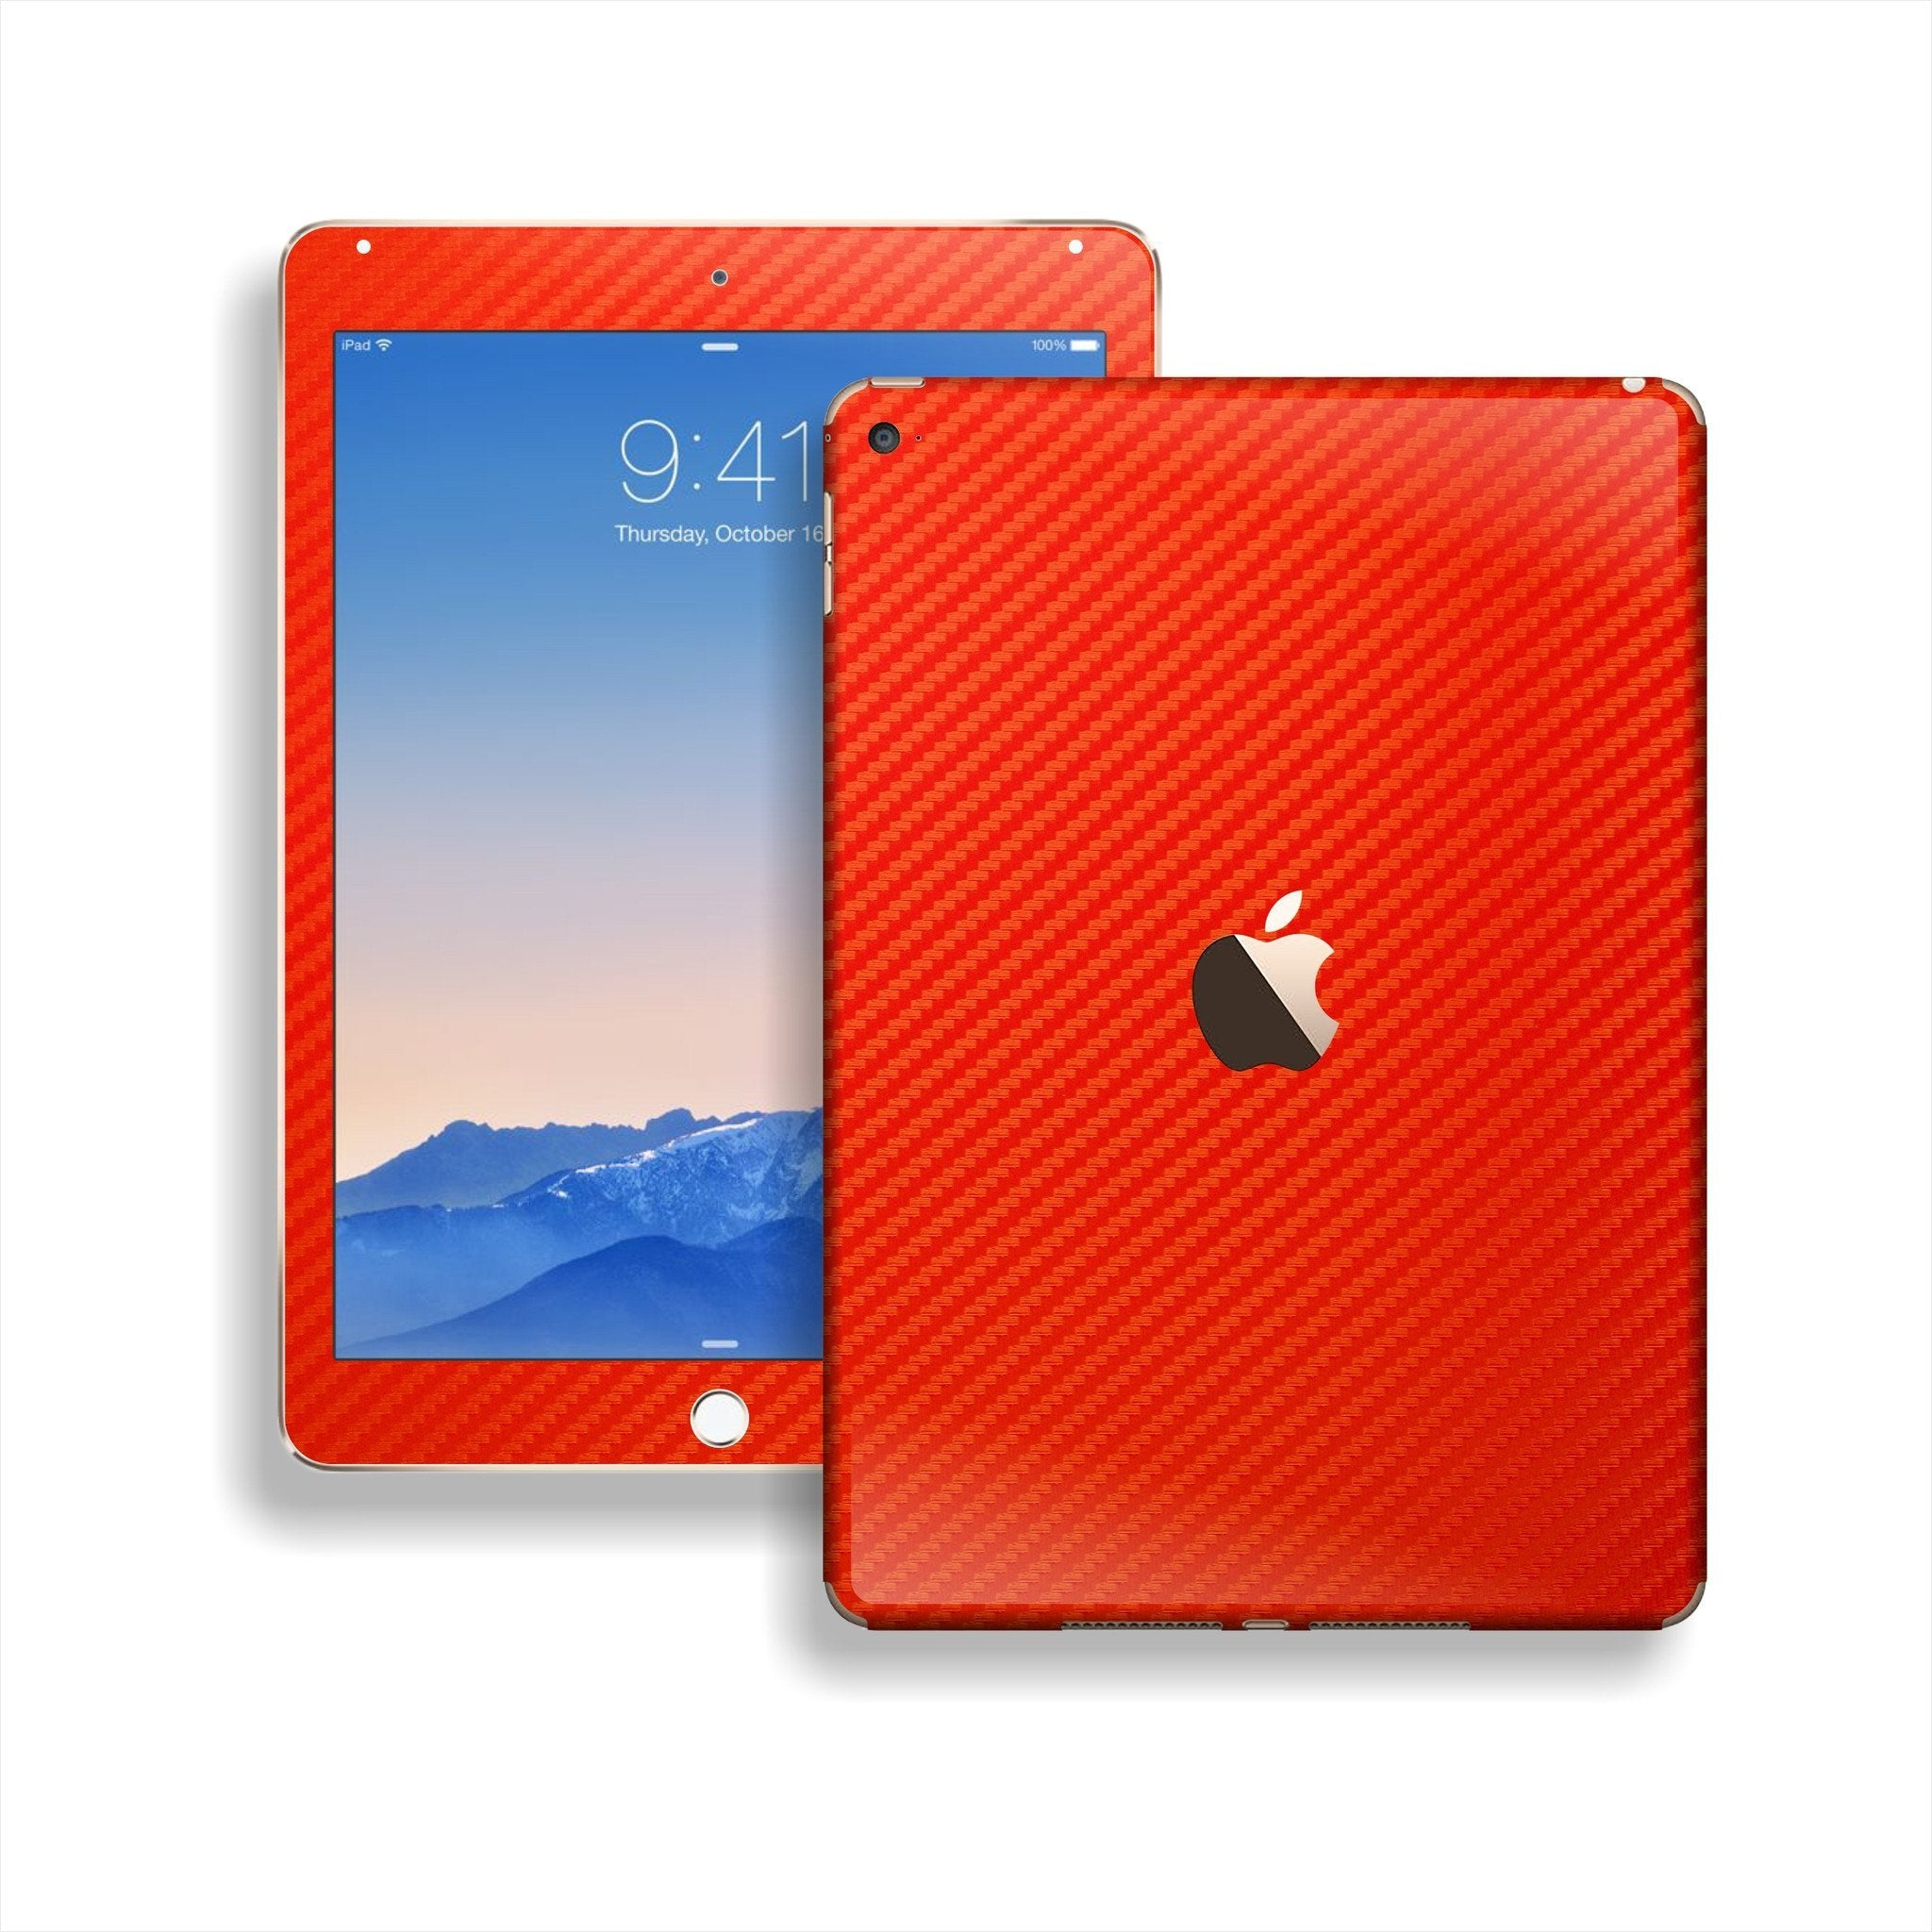 iPad Air 2 Red CARBON Fibre Fiber Skin Wrap Sticker Decal Cover Protector by EasySkinz